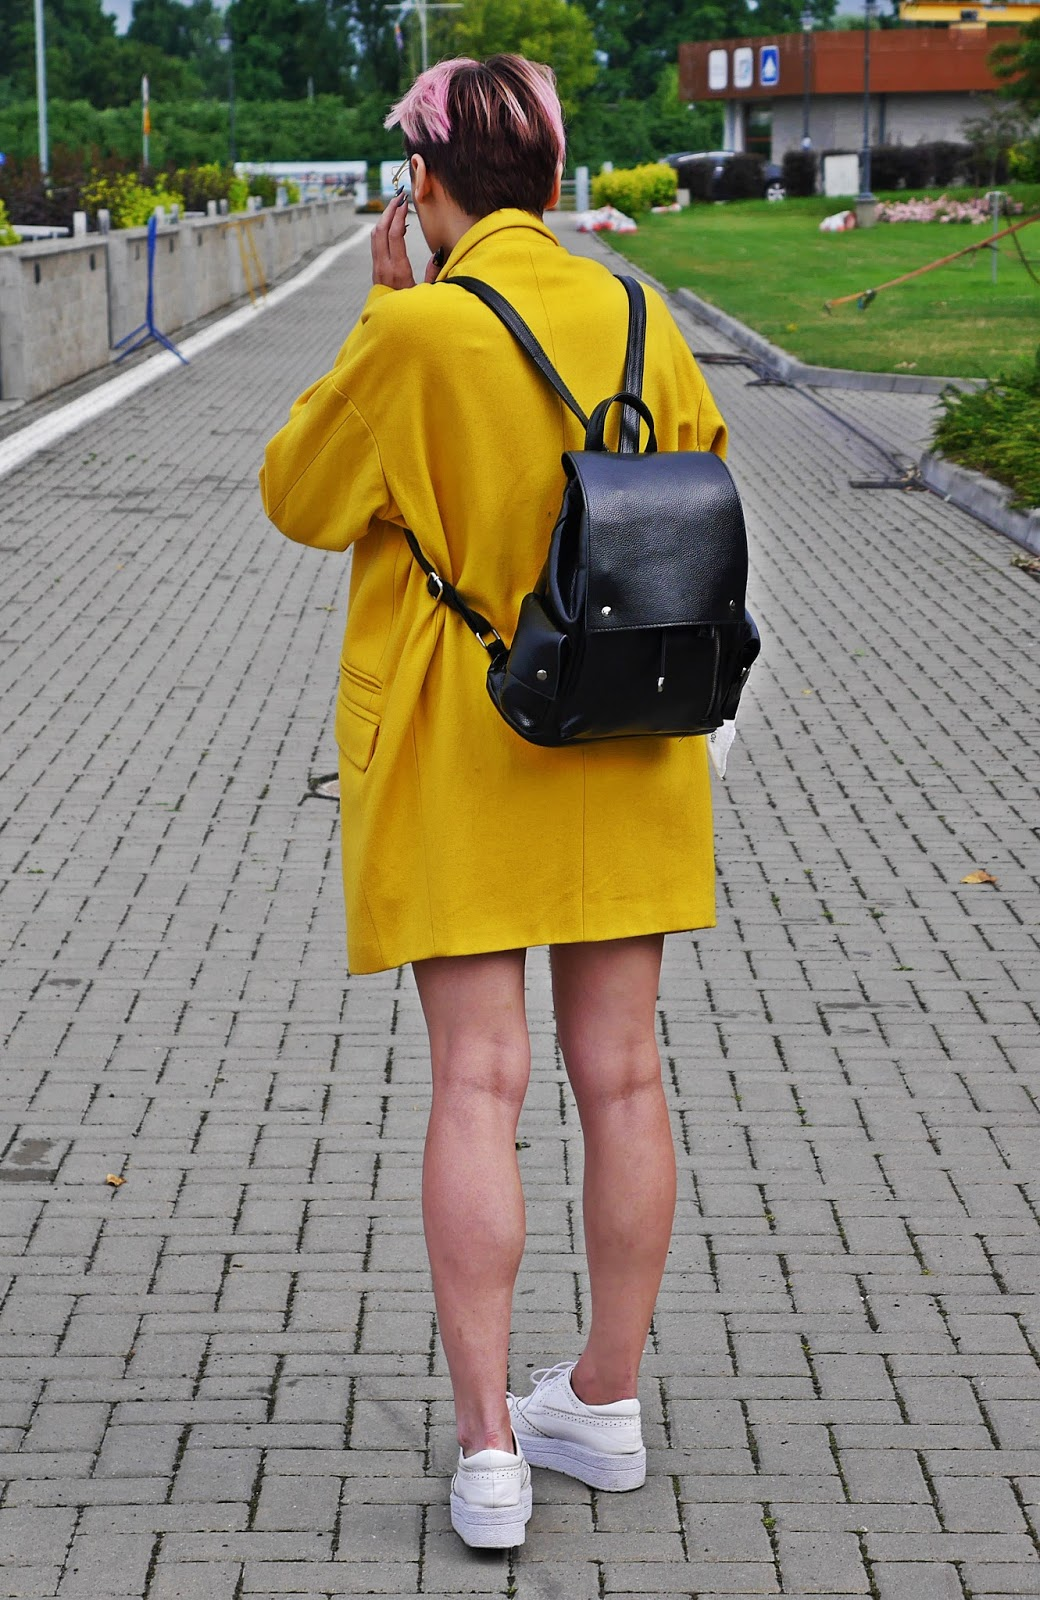 black_backpack_white_platform_shoes_yellow_coat_look_karyn_blog_060717b